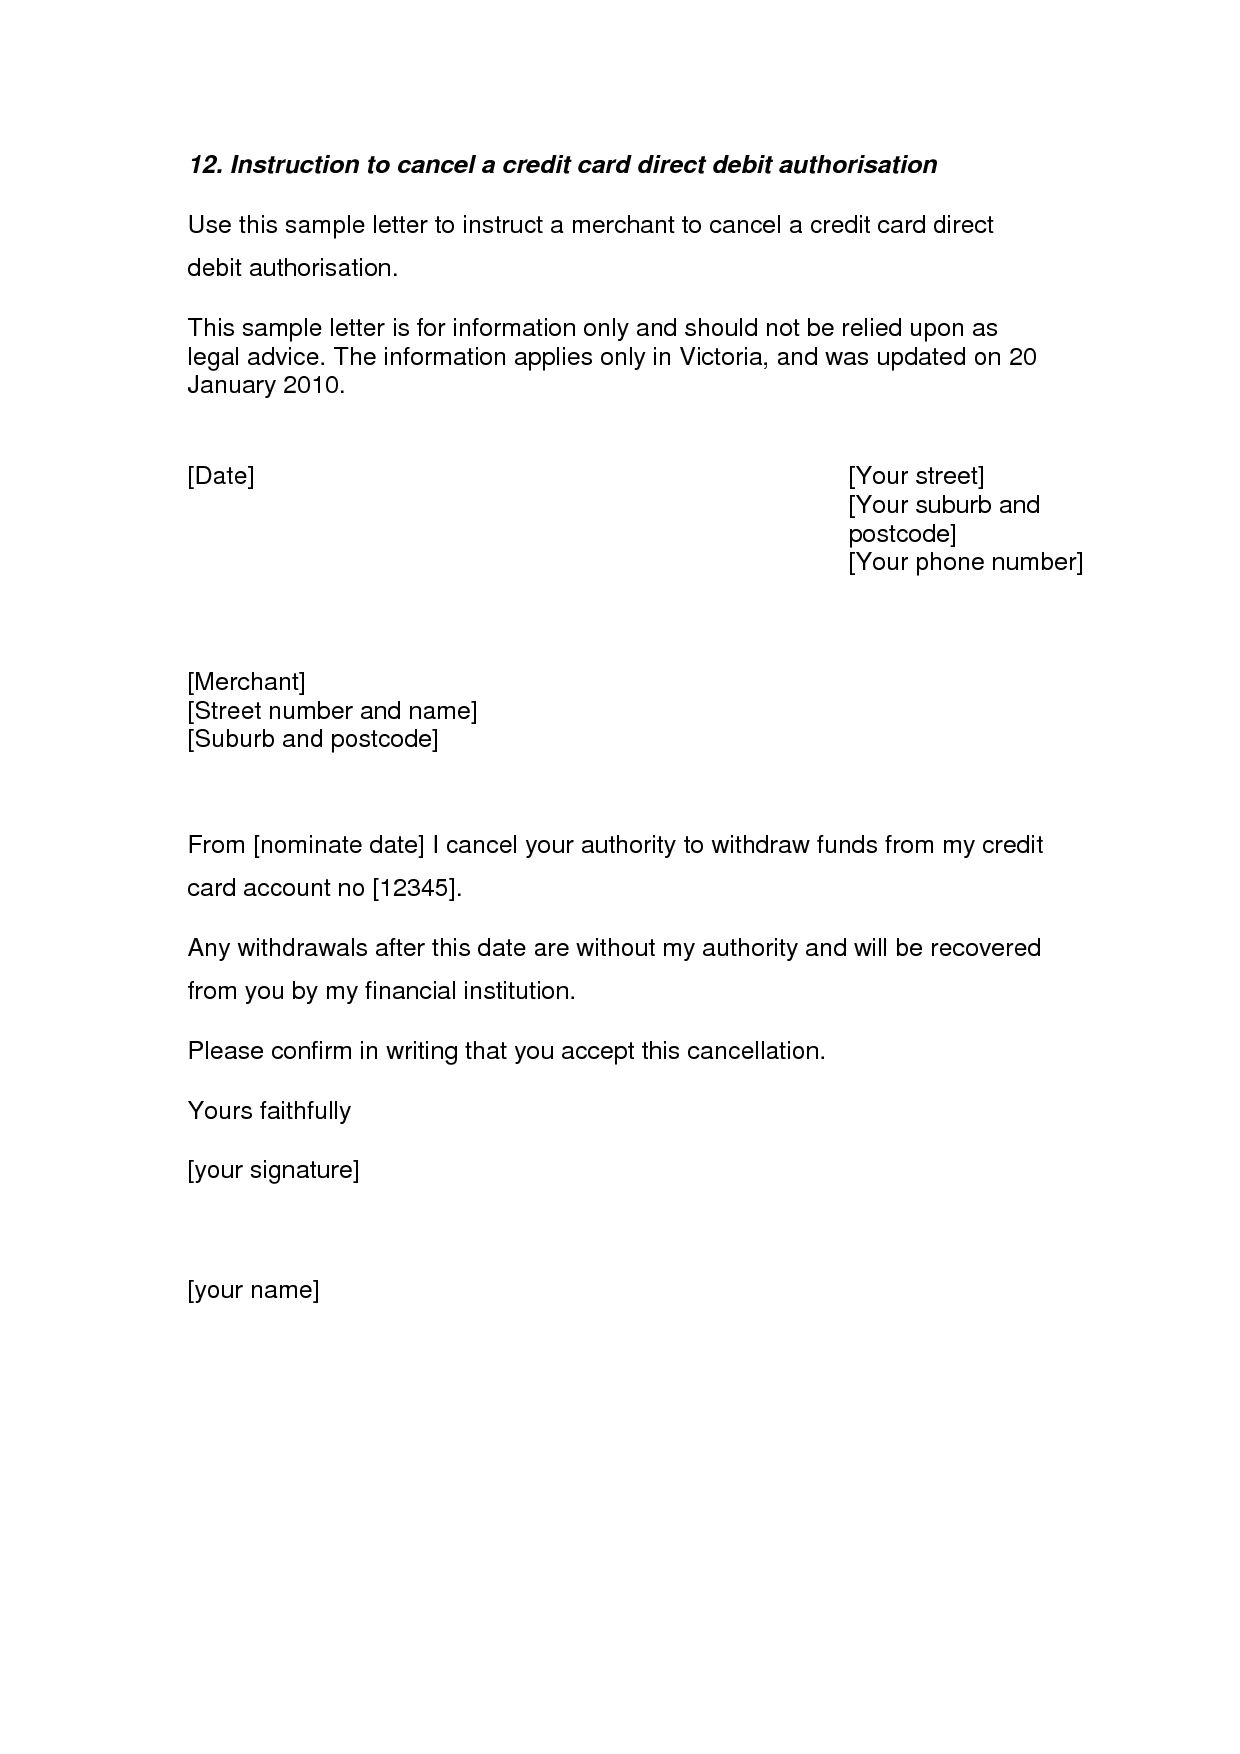 Insurance Policy Cancellation Letter Template - Credit Card Cancellation Letter A Credit Card Cancellation Letter